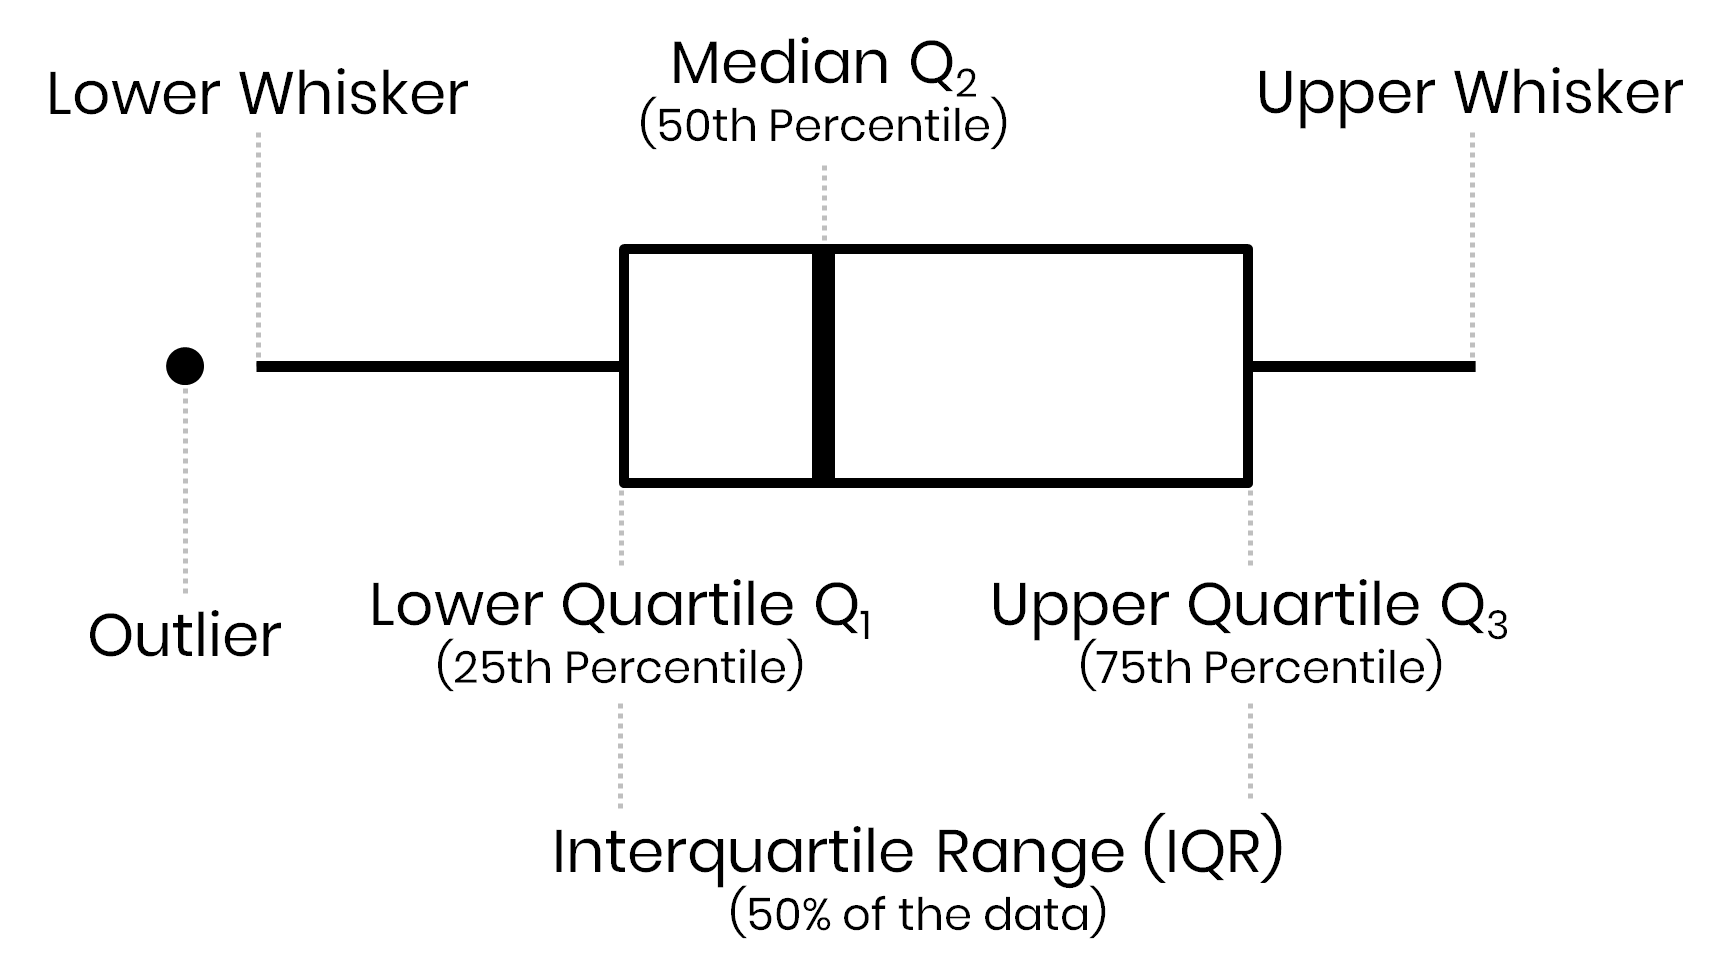 In a Box-and-Whisker plot the box visualizes the upper and lower quartiles, so the box spans the interquartile range (IQR) containing 50 percent of the data, and the median is marked by a vertical line inside the box.